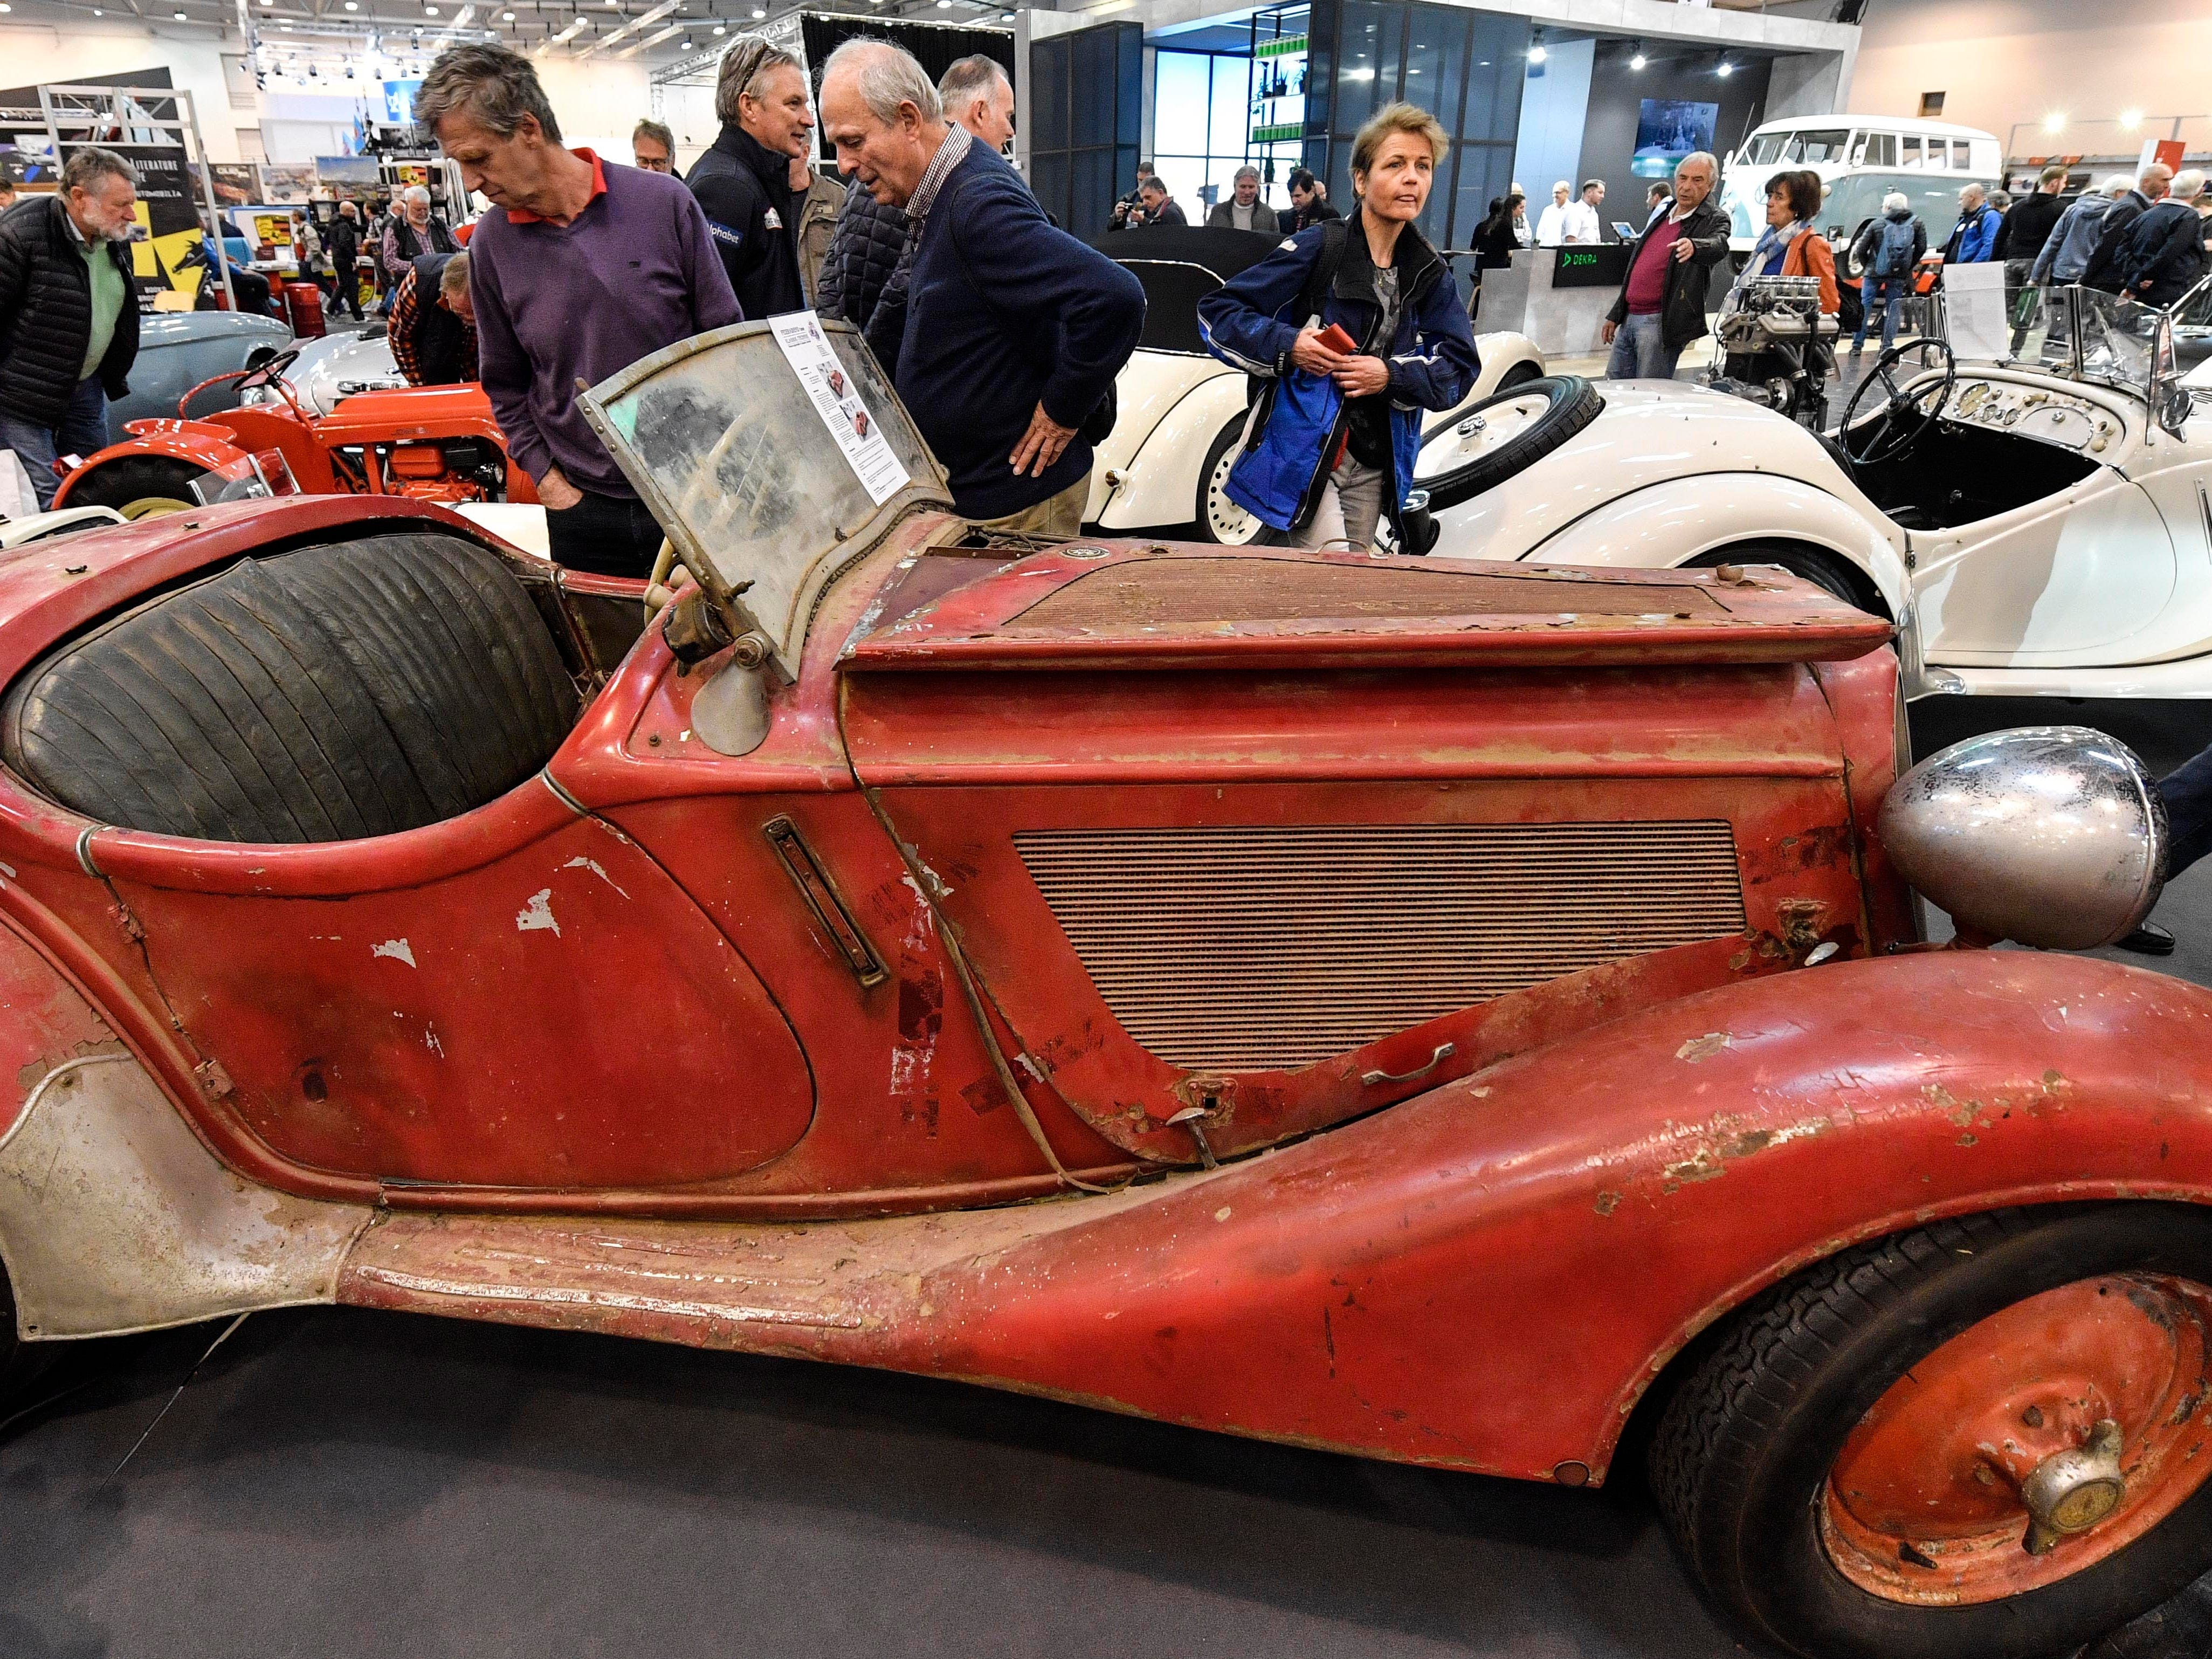 Visitors look at a 1938 BMW 328 Roadster ready for restoration at the World Show for Vintage, Classic and Prestige Automobiles Techno-Classica in Essen, Germany, Friday, April 12, 2019.